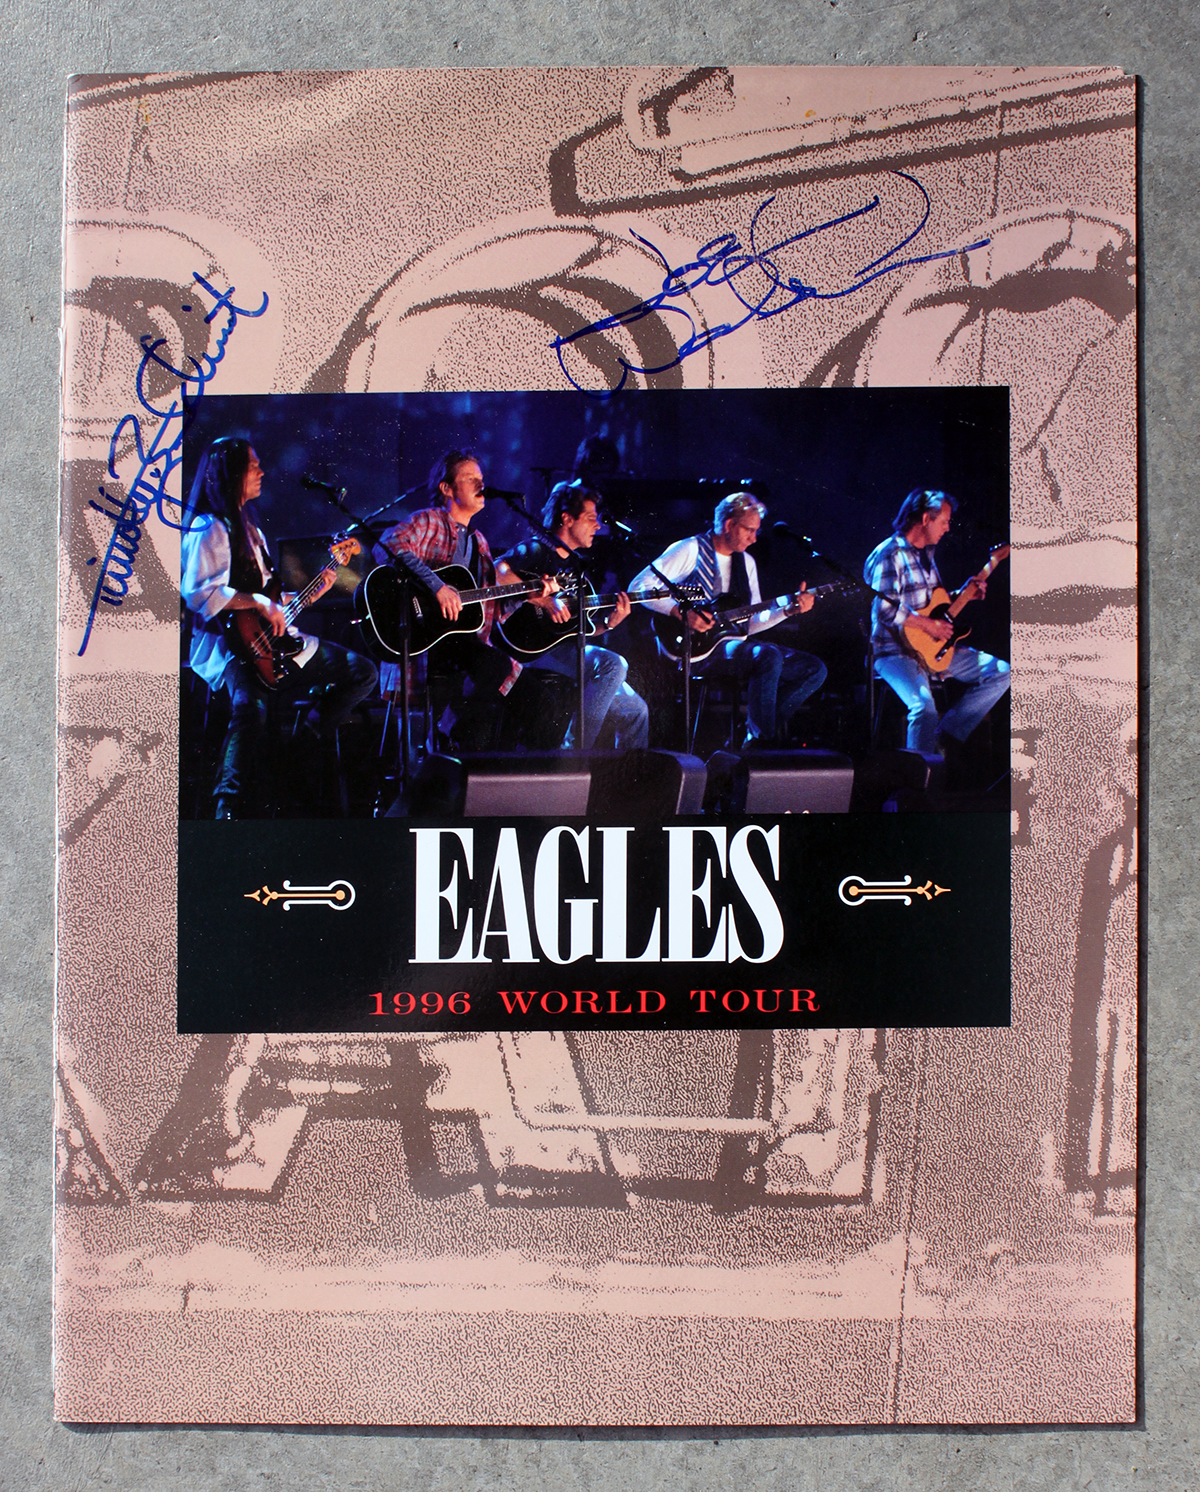 Eagles Tour Book - 1996 World Tour